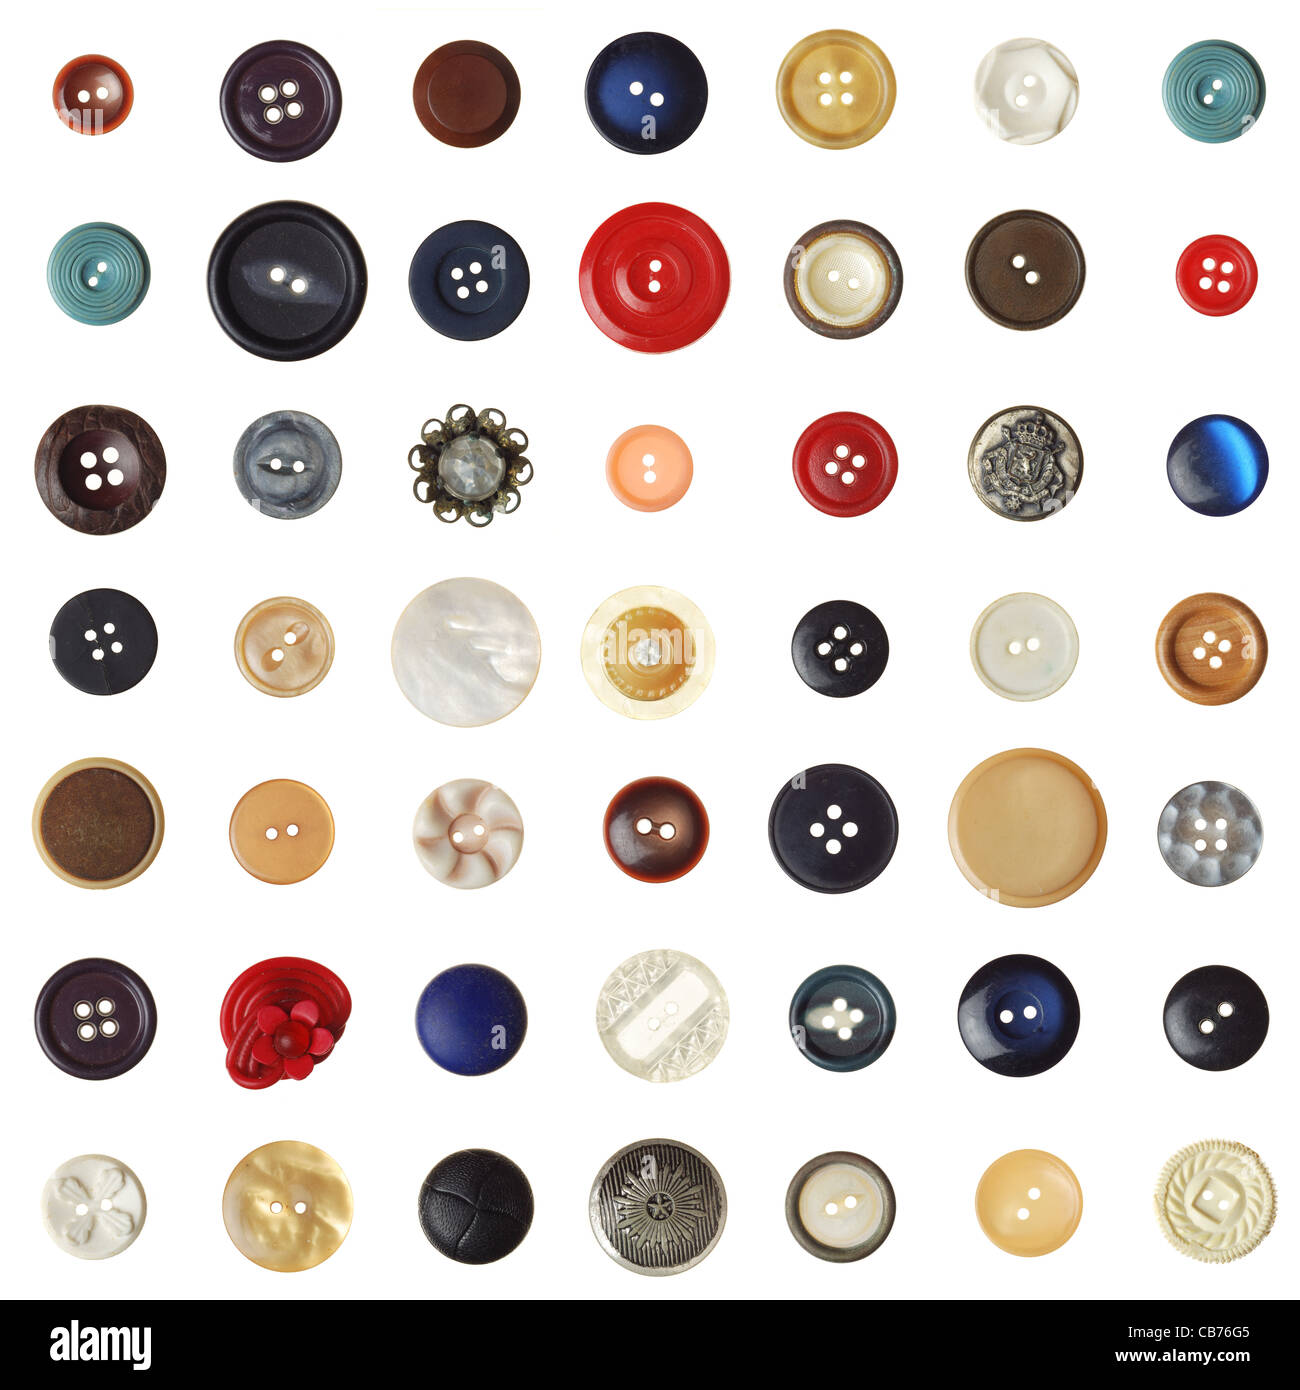 vintage/retro buttons on white. (1 of 2) - Stock Image